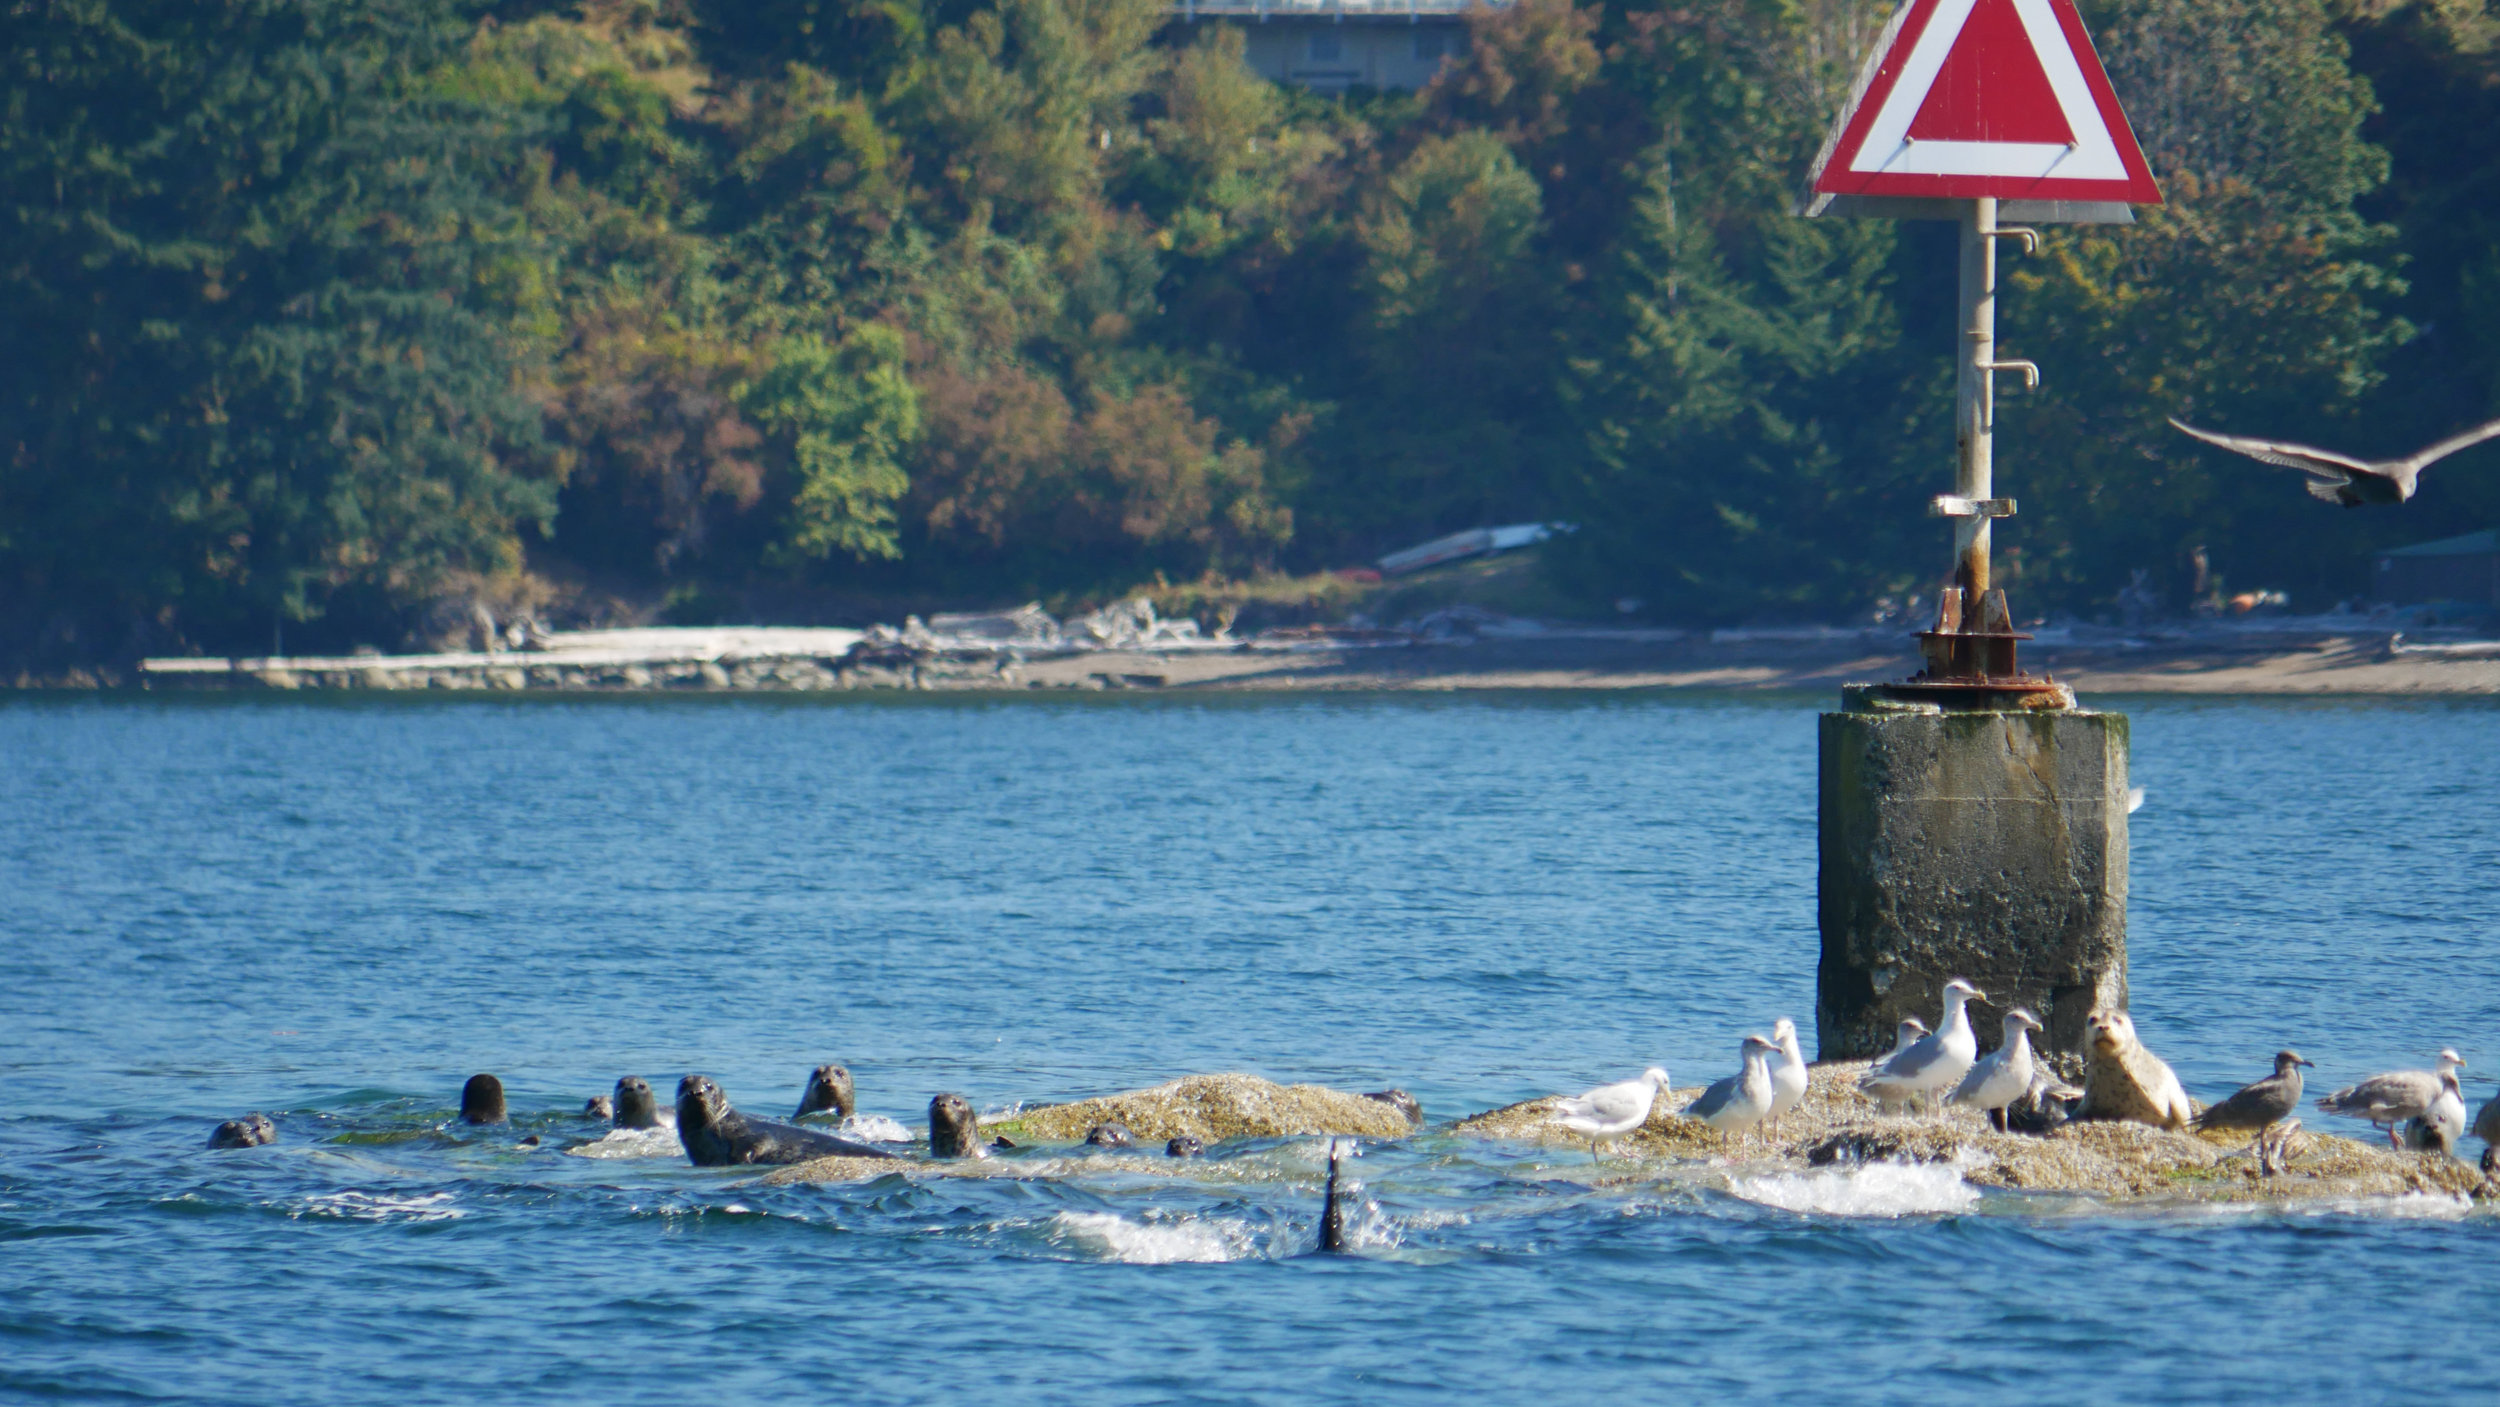 Some very scared seals keeping an eye on the orca attackers! Photo by Val Watson.